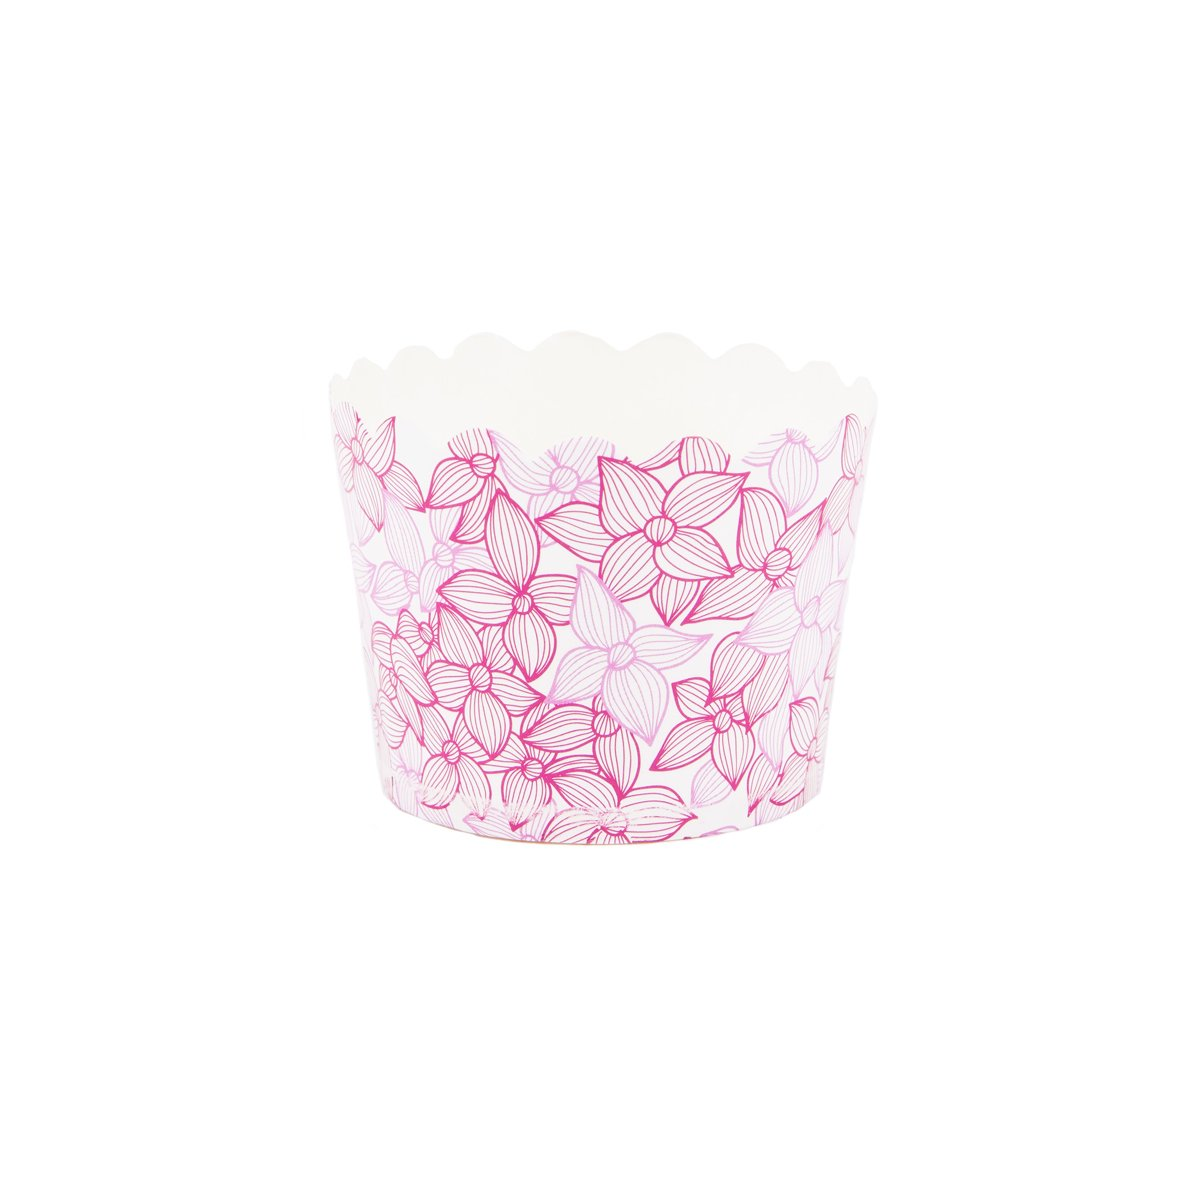 Simply Baked Small Paper Baking Cup, Pink Floral, 550 Pack, Disposable & Oven-Safe by Simply Baked